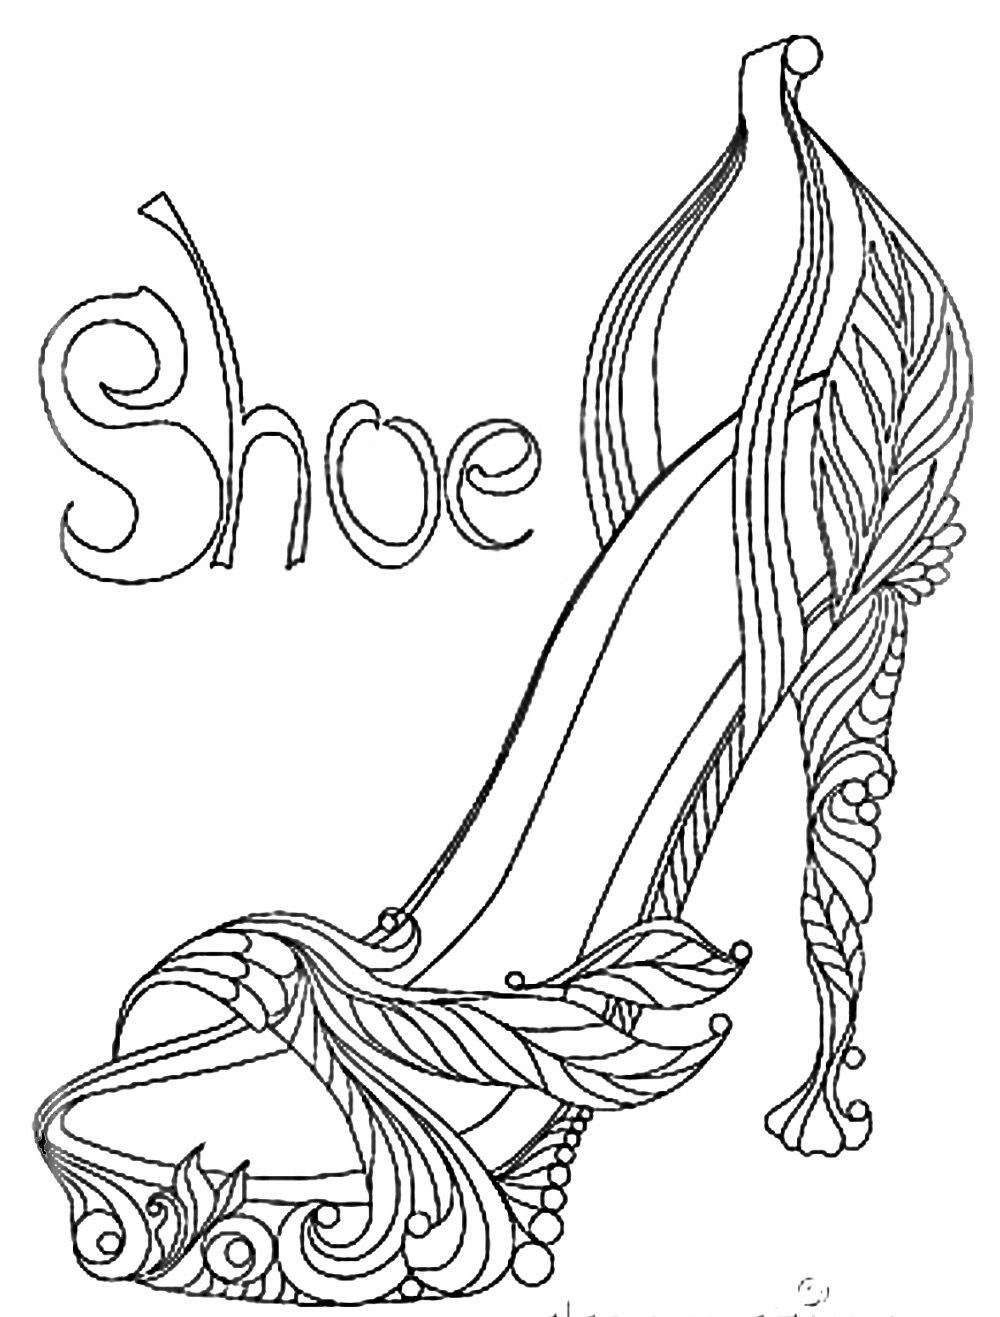 High Heel Shoe Coloring Page Coloring Pages Horse Coloring Pages Animal Kingdom Colouring Book